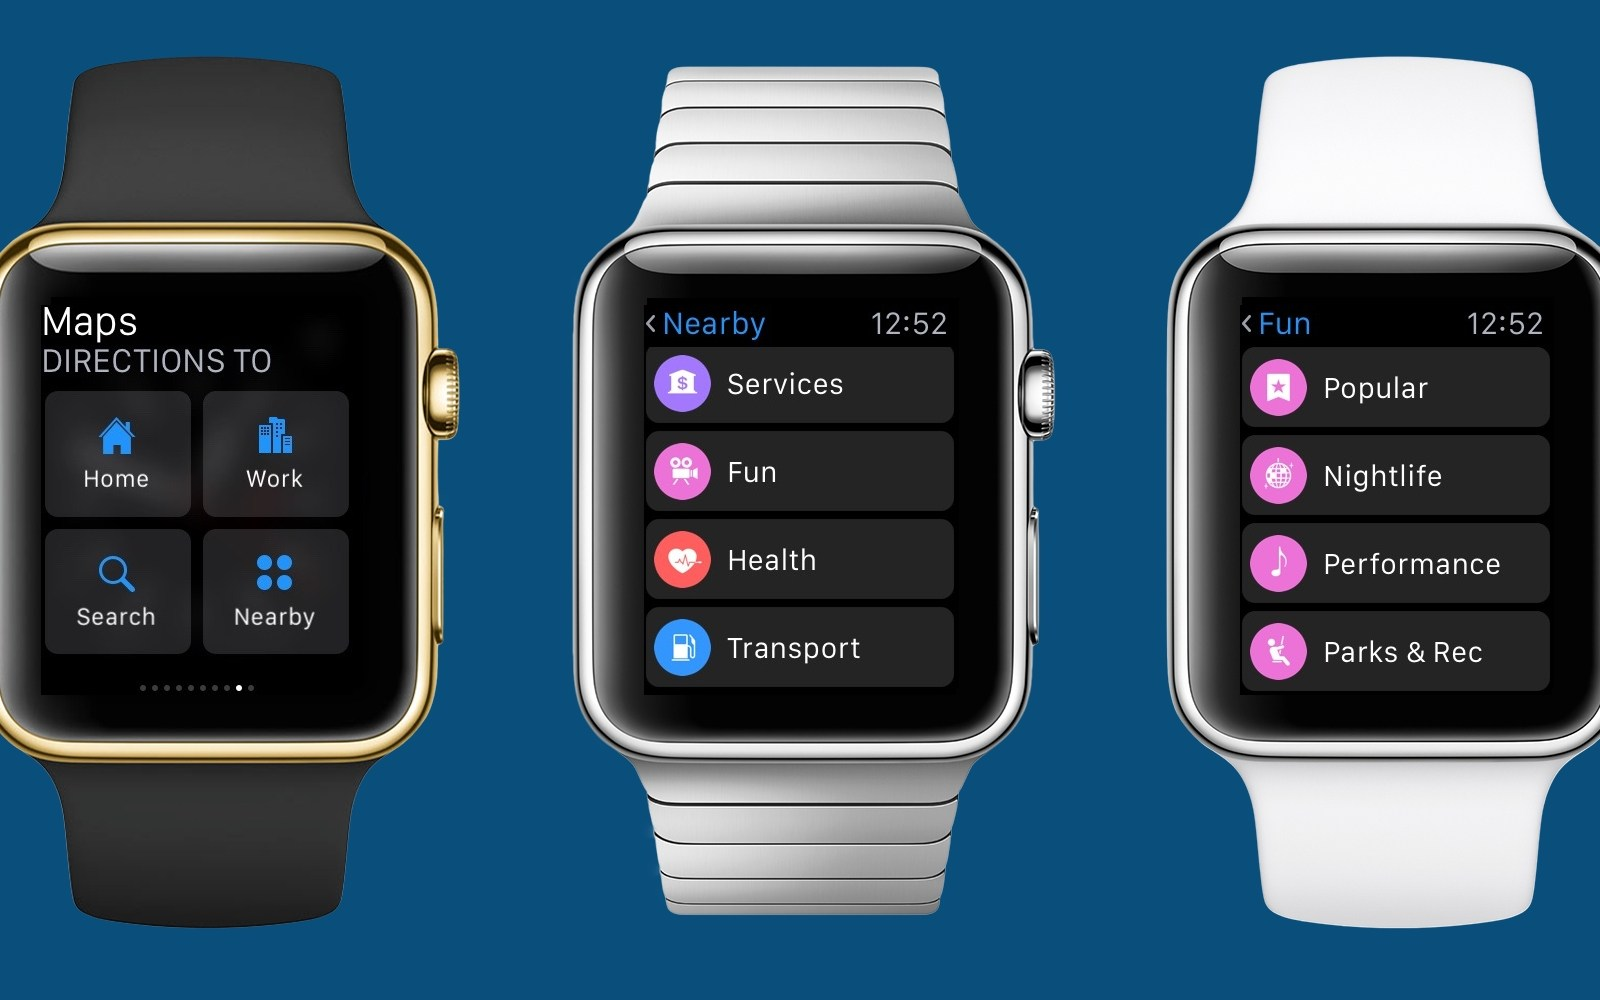 watchOS 2.2 beta 6 for Apple Watch w/ new Maps app is now available